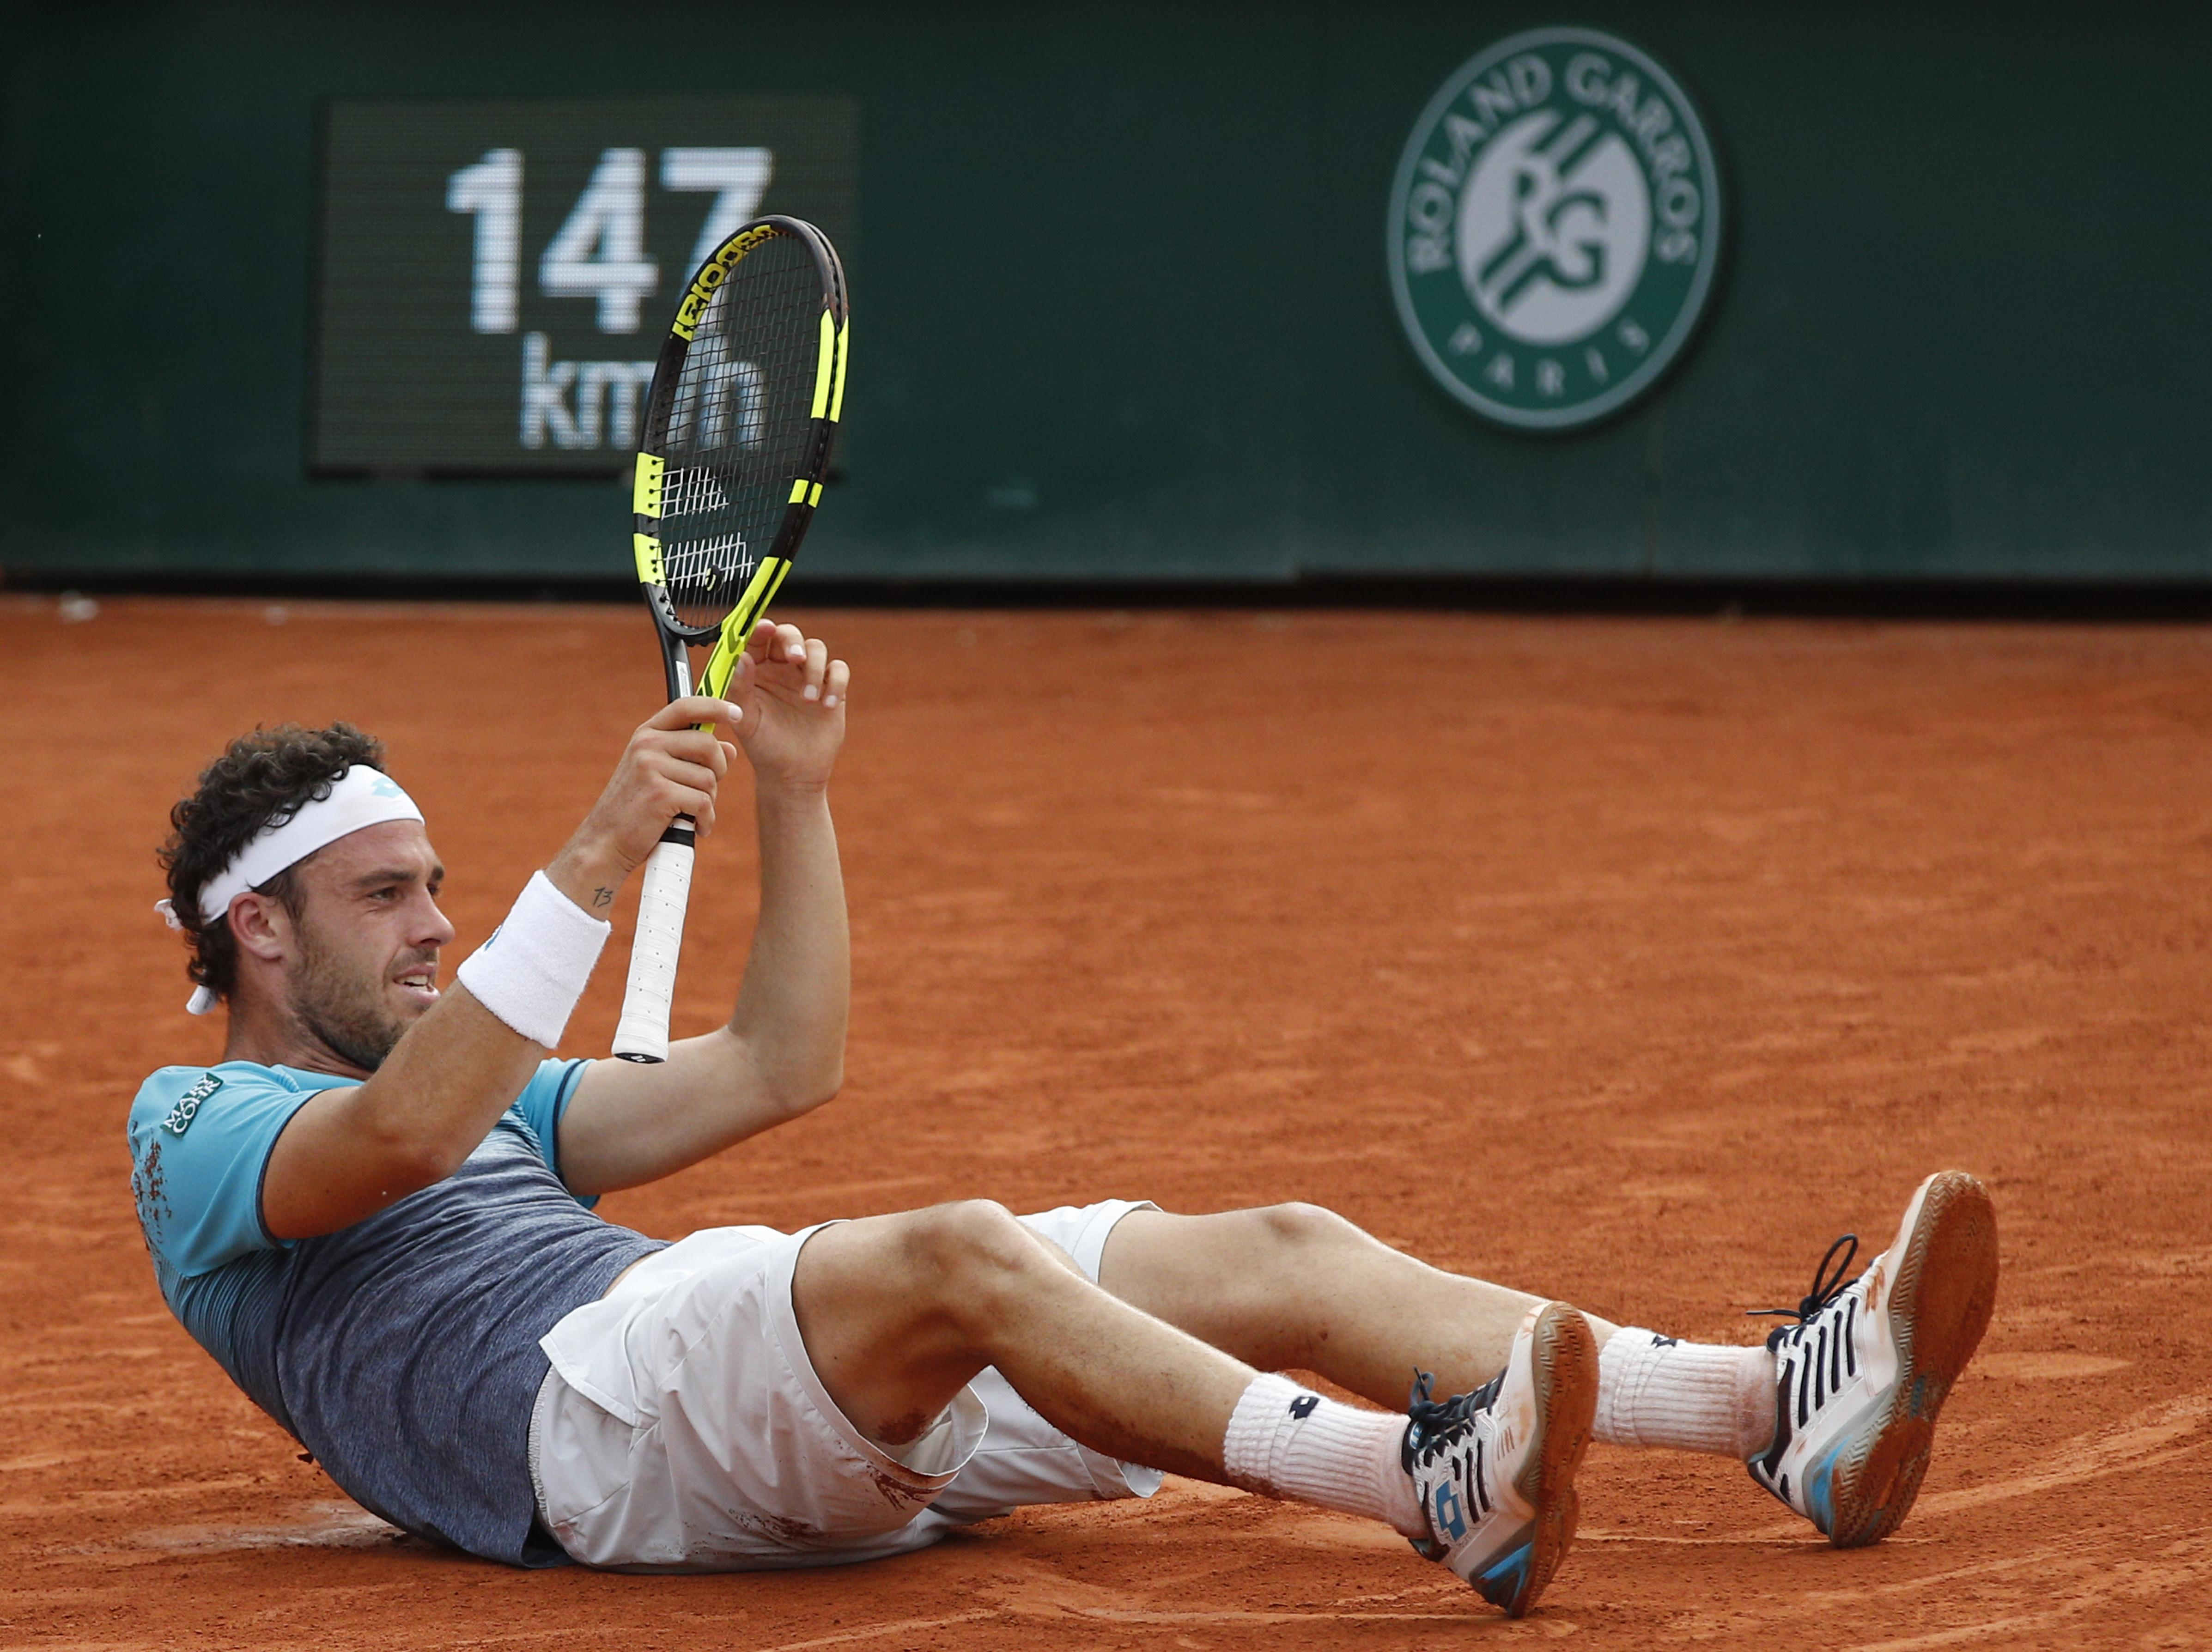 Cecchinato won an epic game which lasted four sets